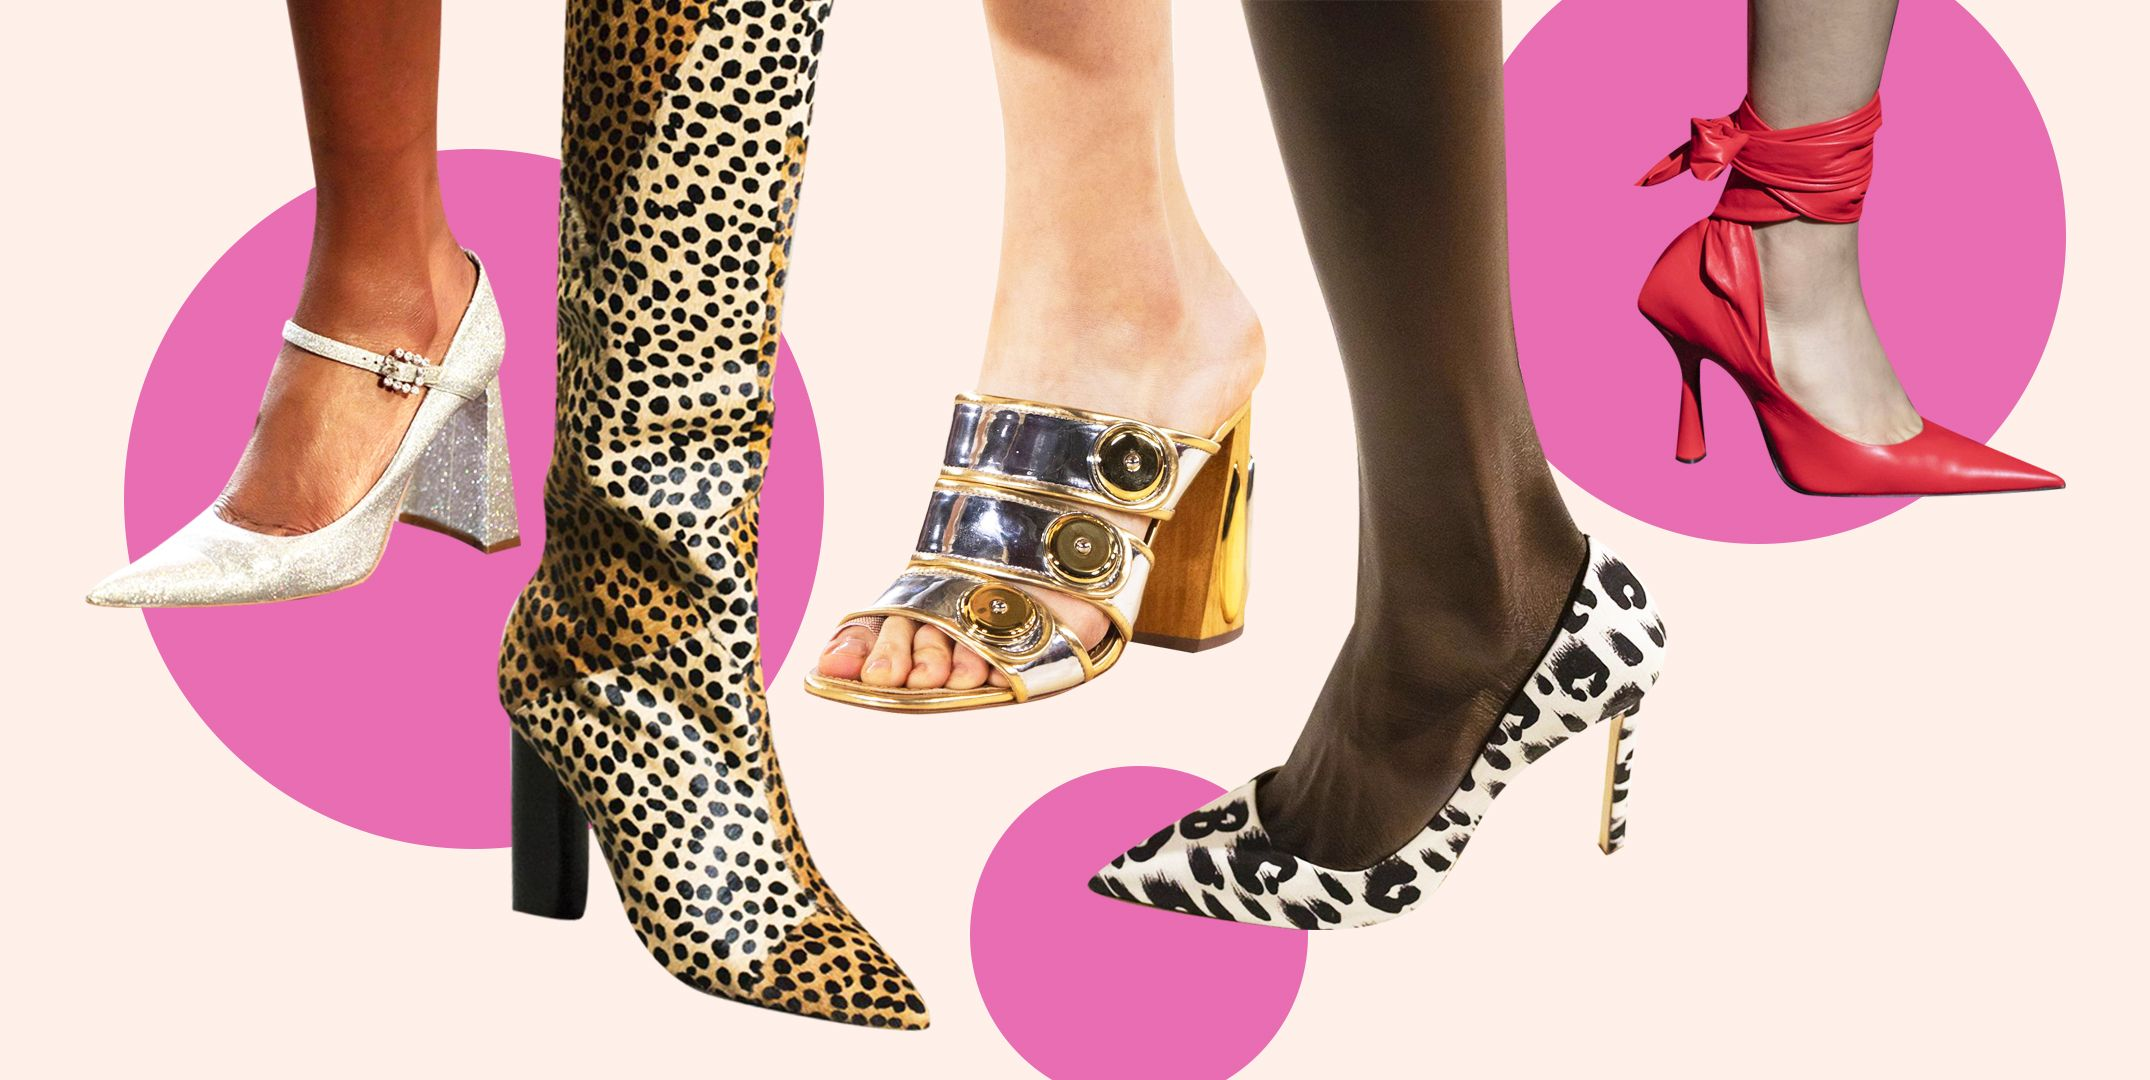 15 Fall Shoe Trends 2019 — Top Fall Accessory Runway Trends